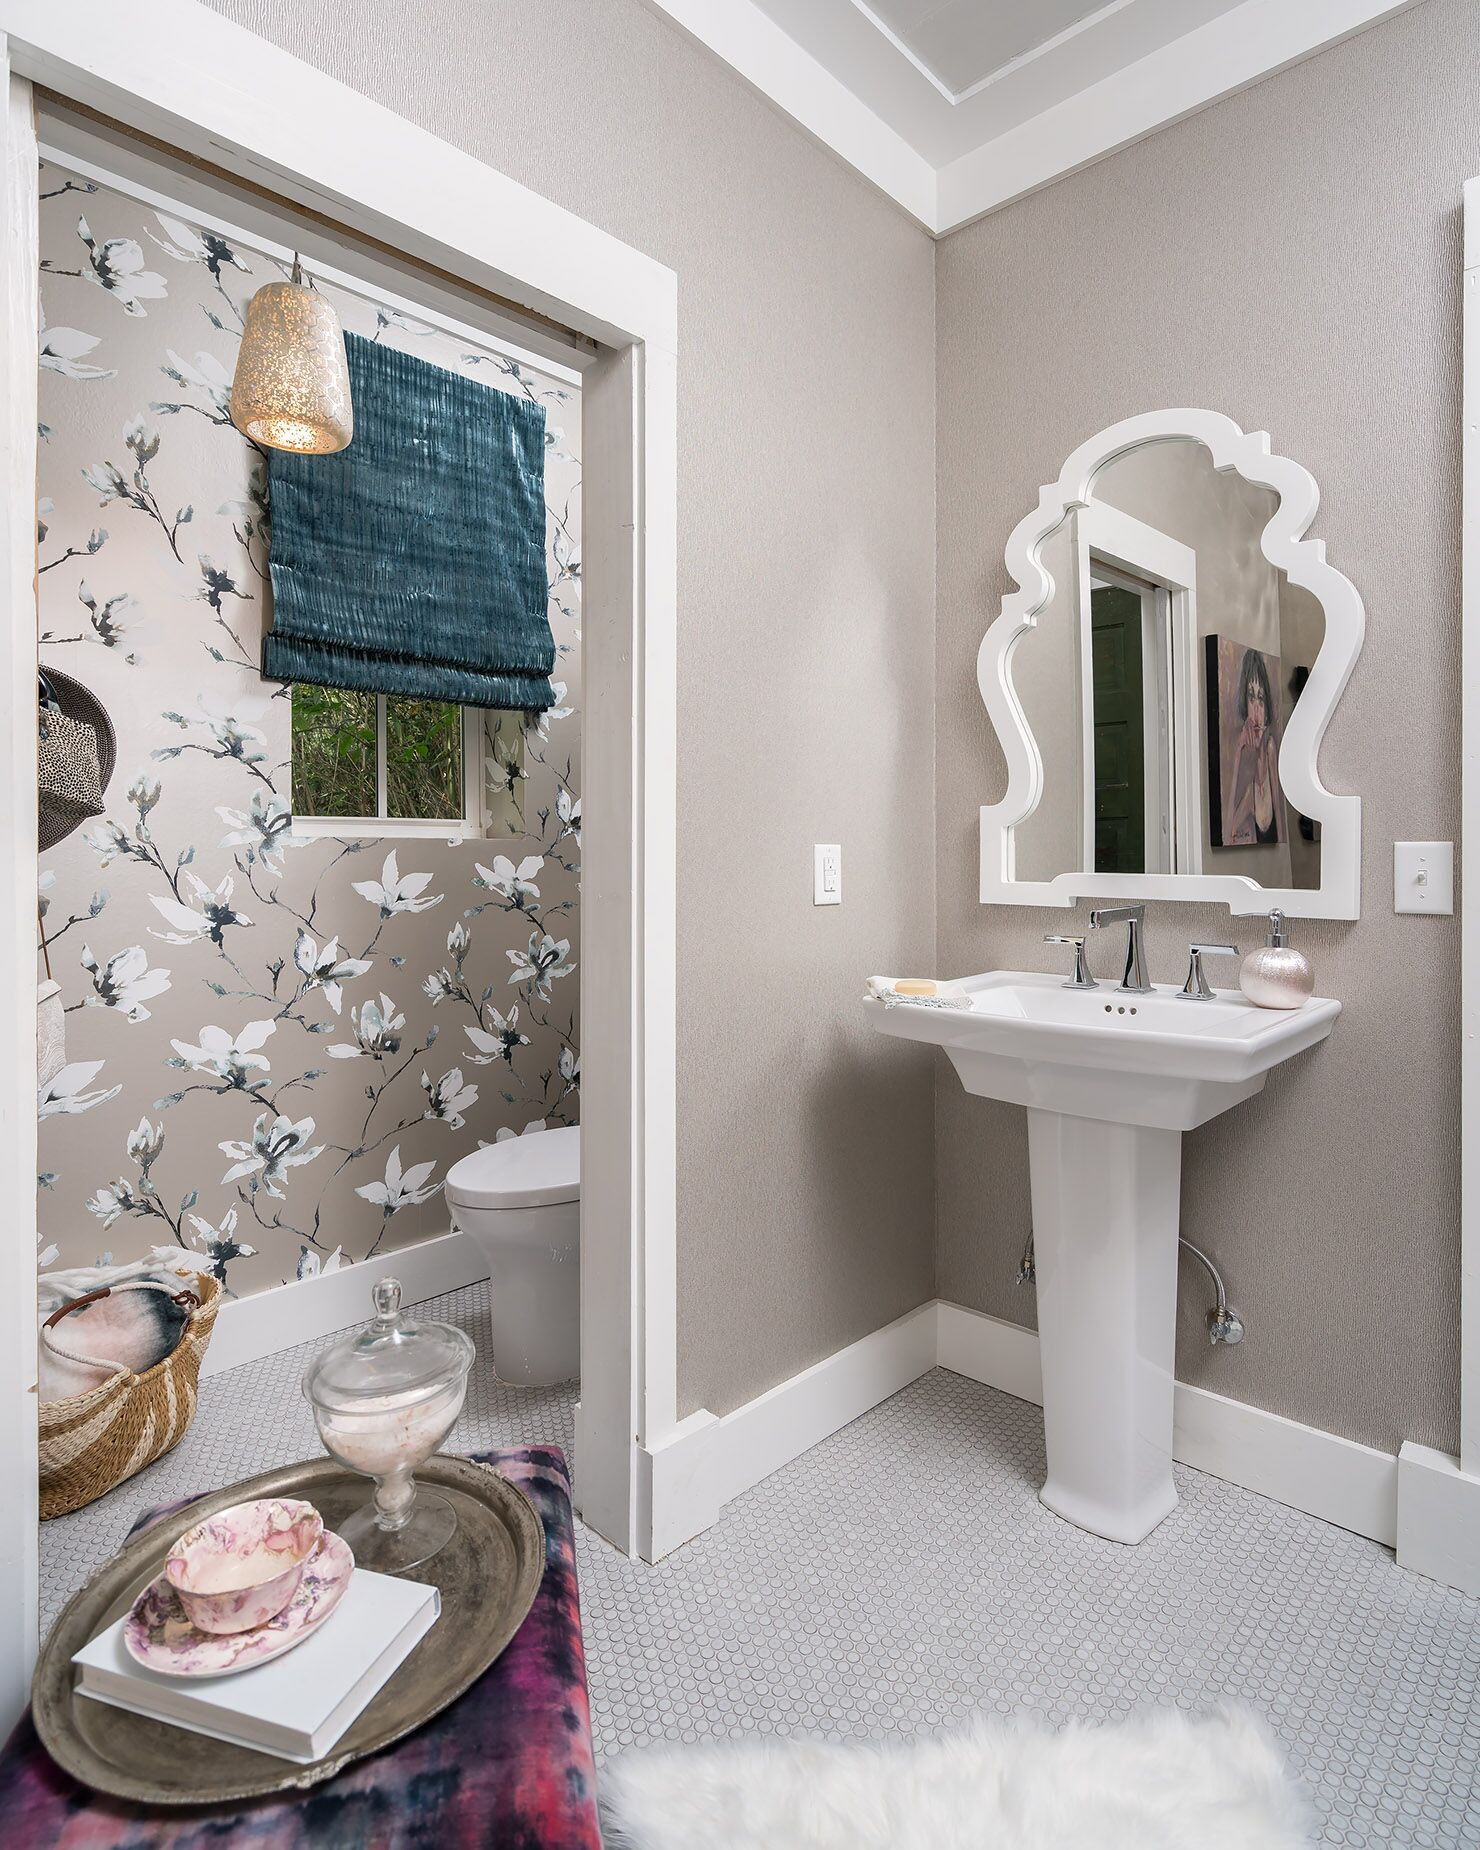 shed bathroom remodel with mirrored walls and stand alone tub in rh pinterest com